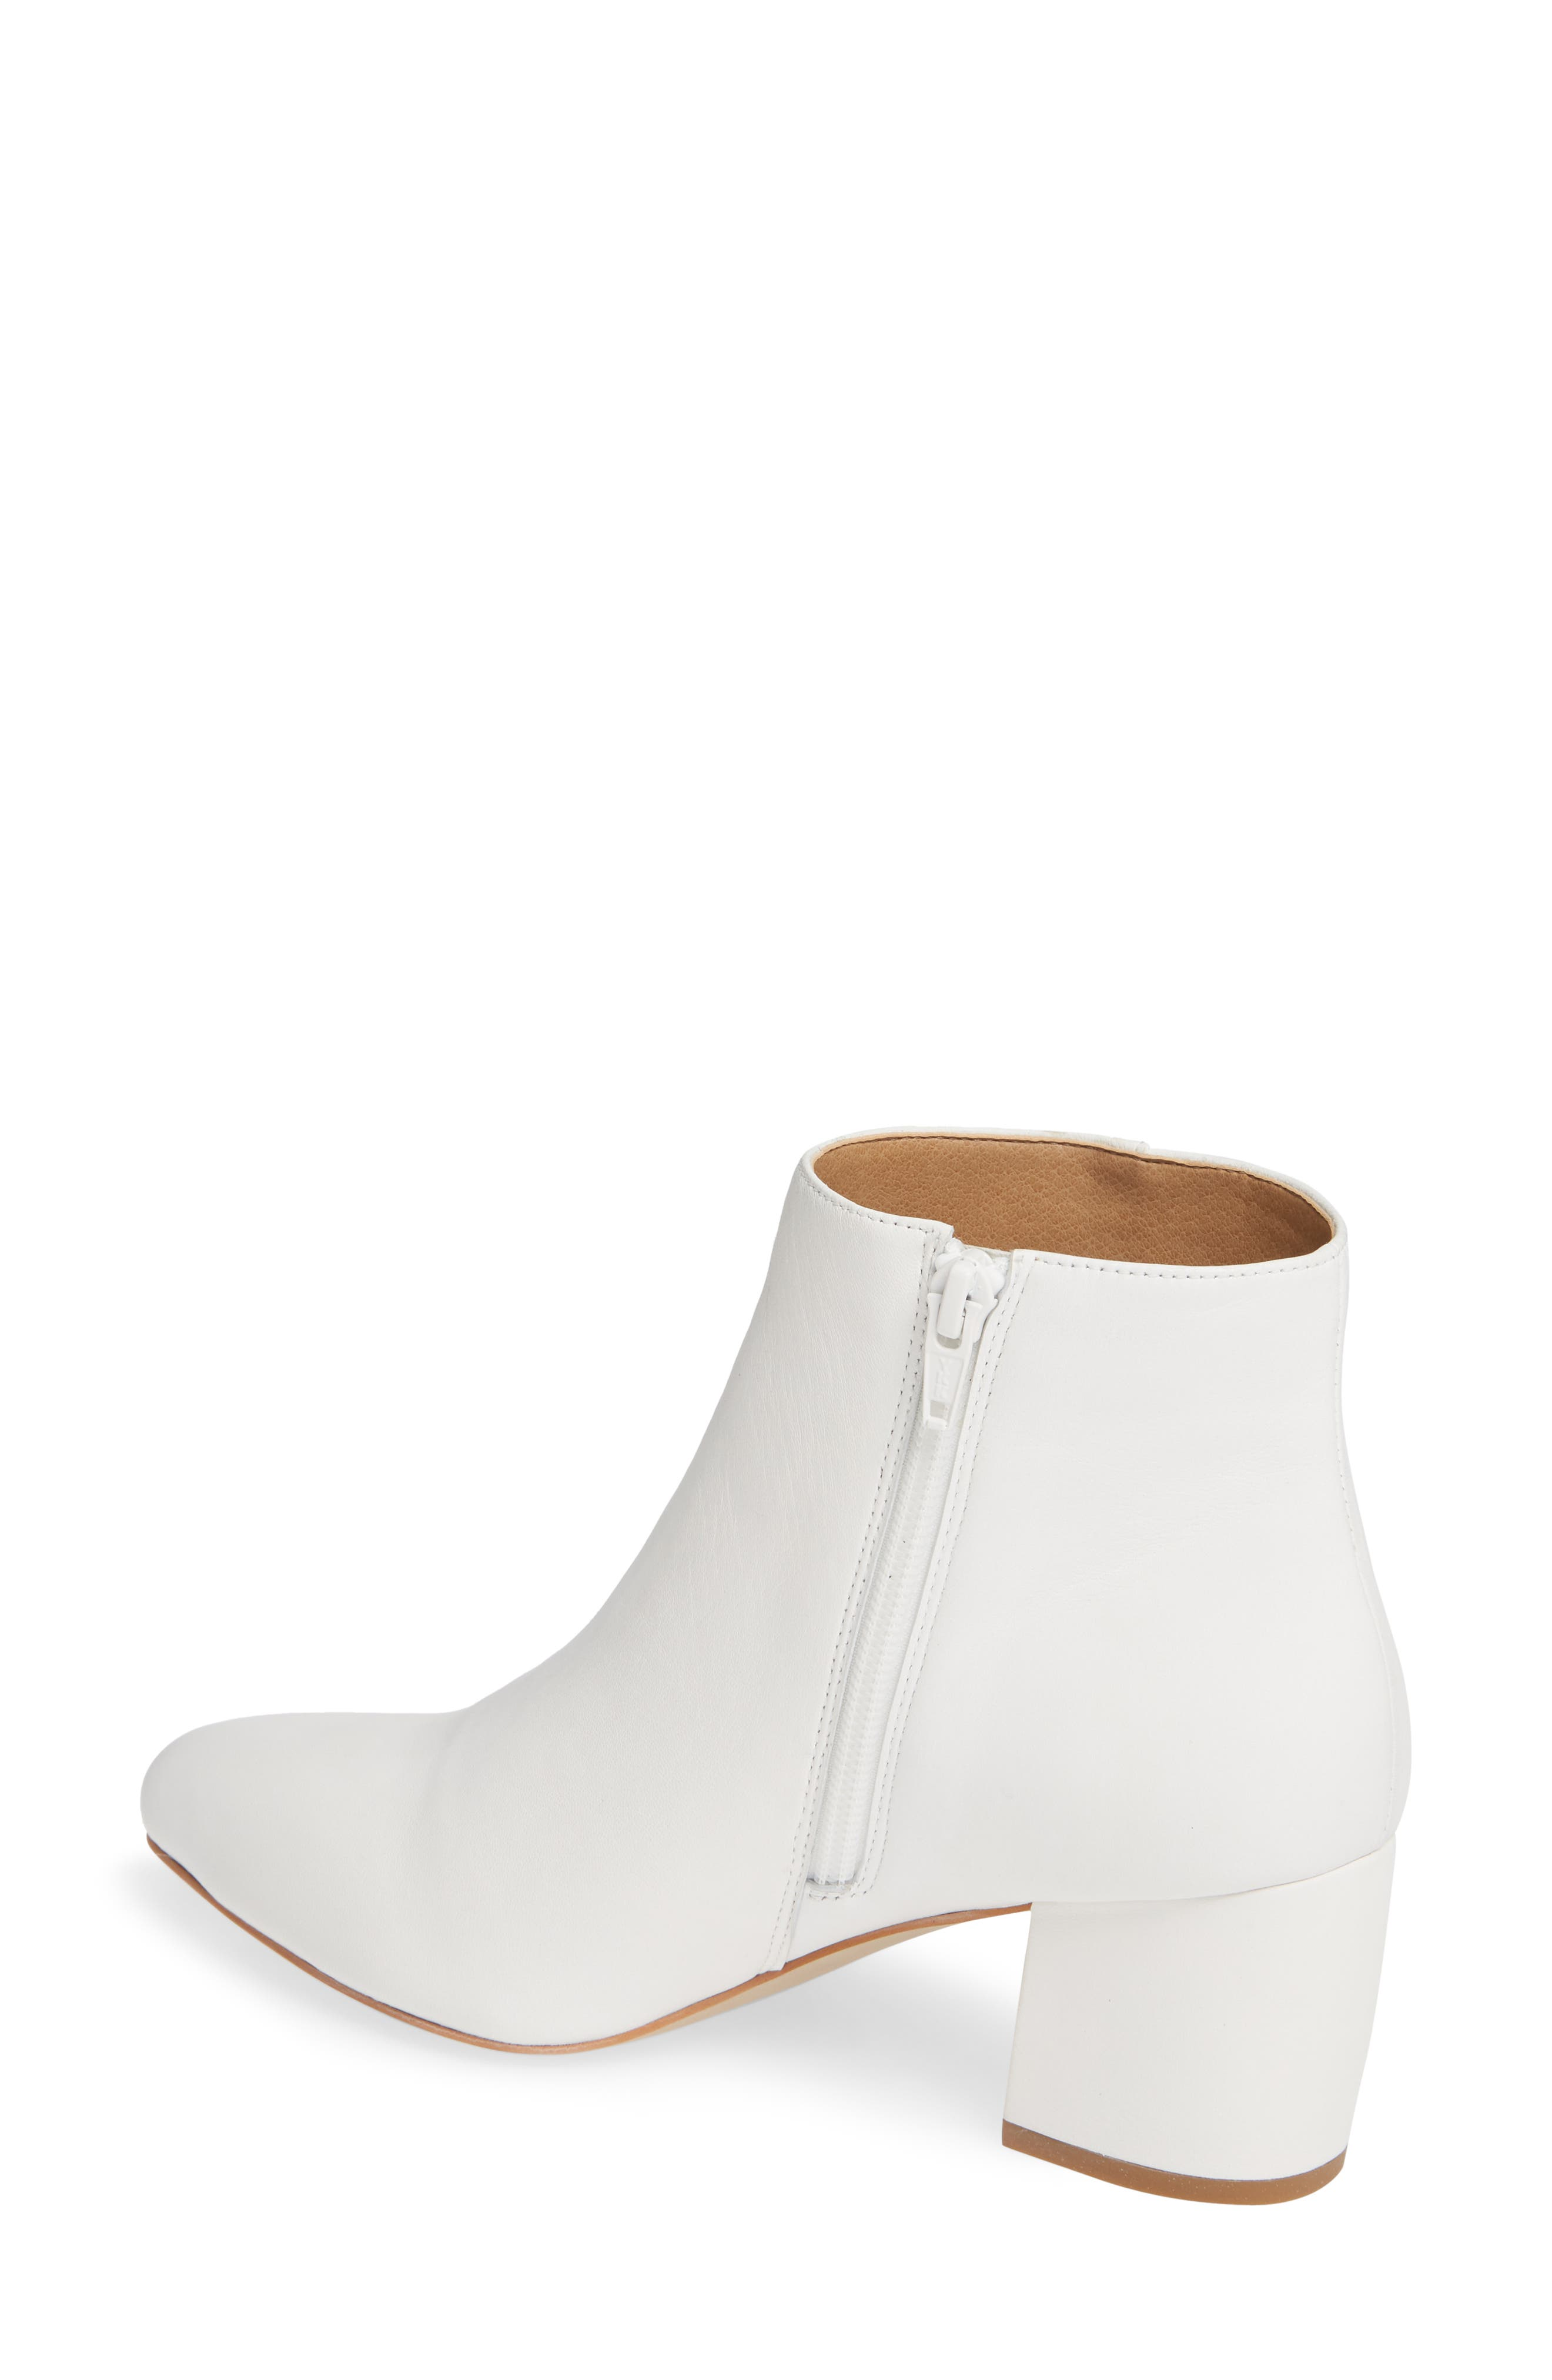 NIC+ZOE, Amorie Bootie, Alternate thumbnail 2, color, WHITE LEATHER